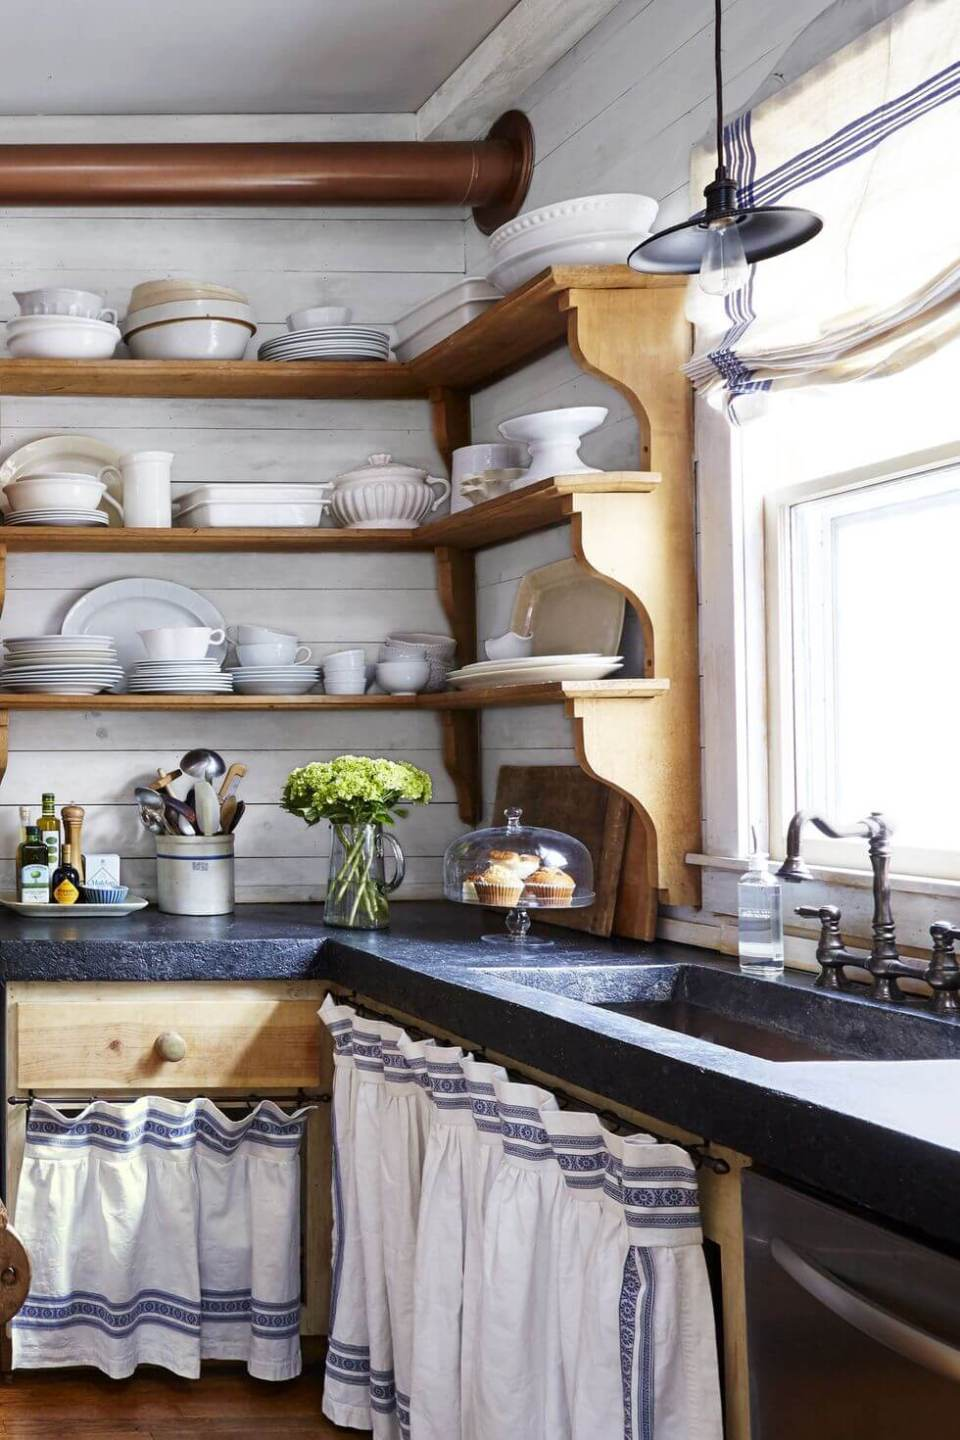 Pine shelves with blue countertops, and skirted storage from old linen tablecloth | Inspiring Farmhouse Kitchen Design & Decor Ideas